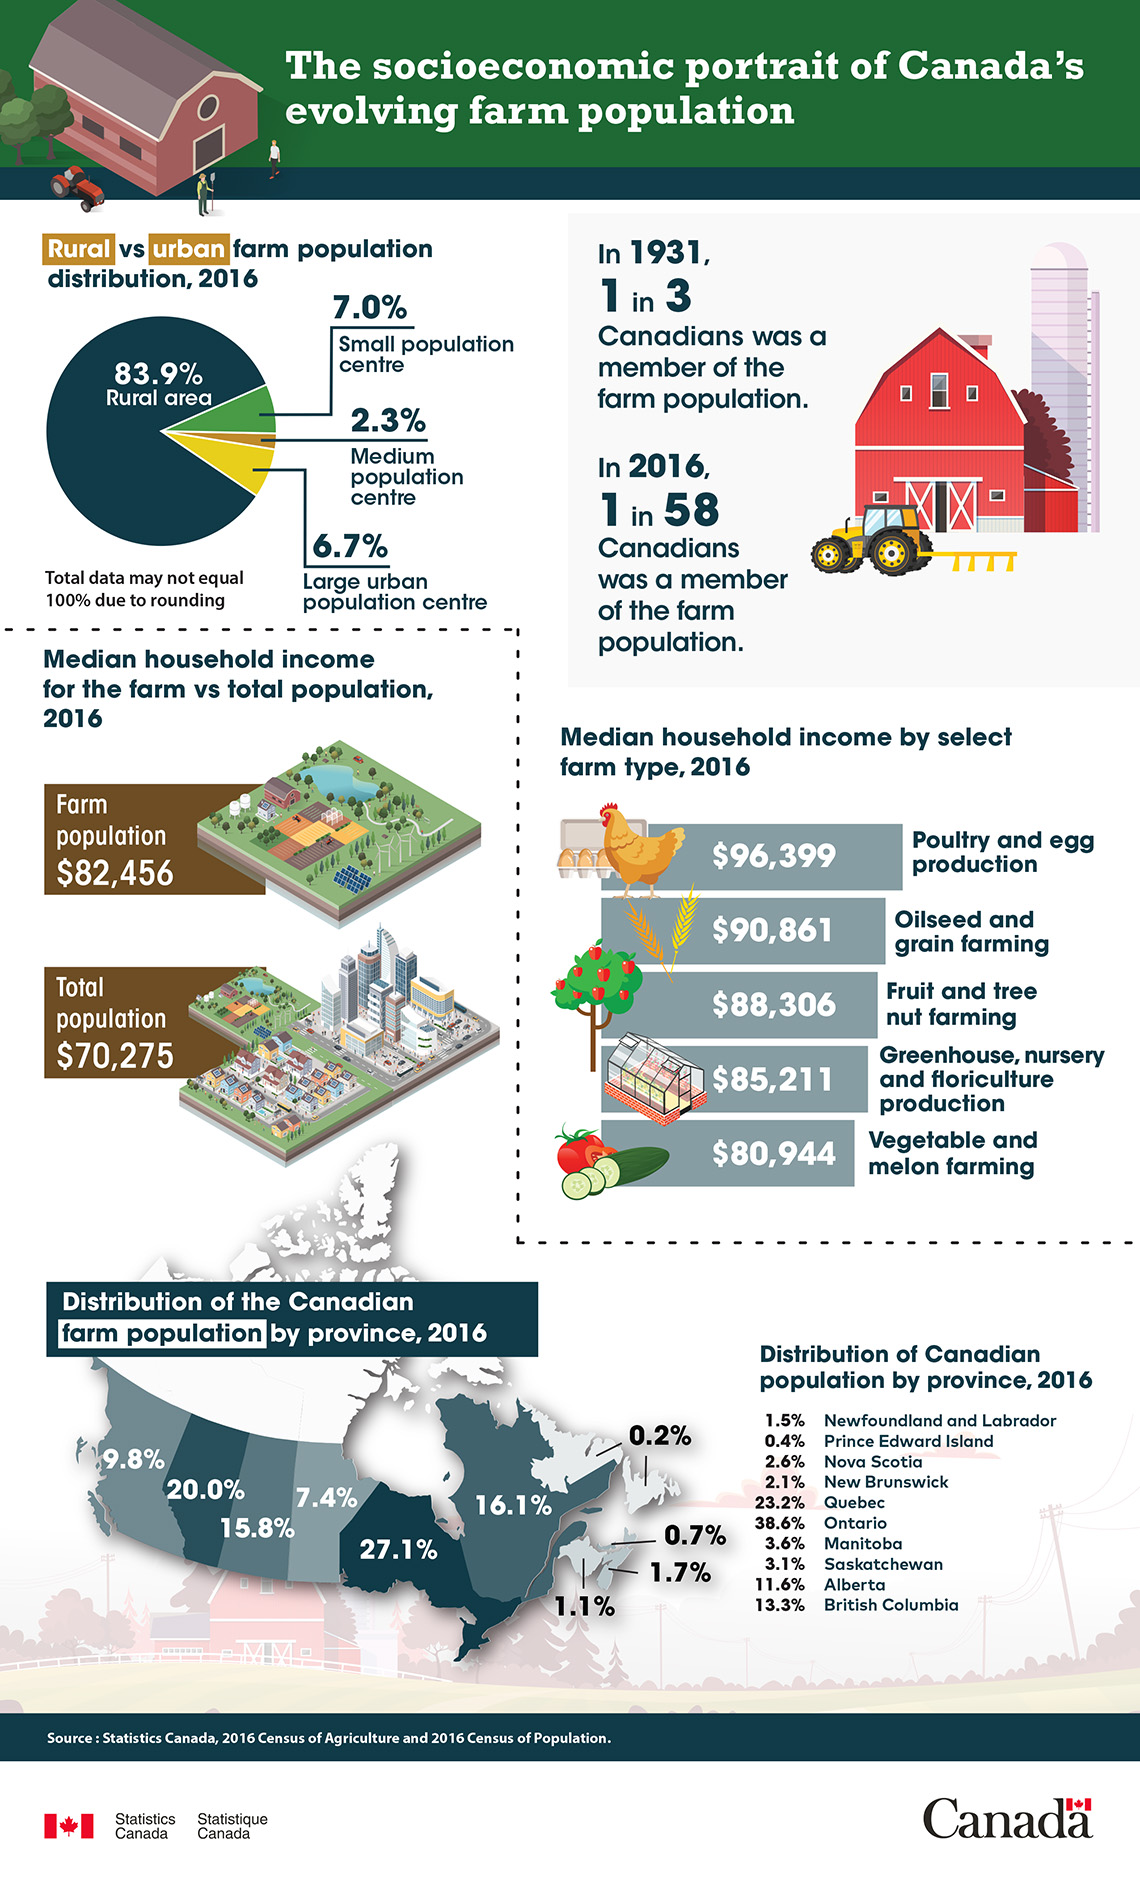 Infographic: The socioeconomic portrait of Canada's evolving farm population